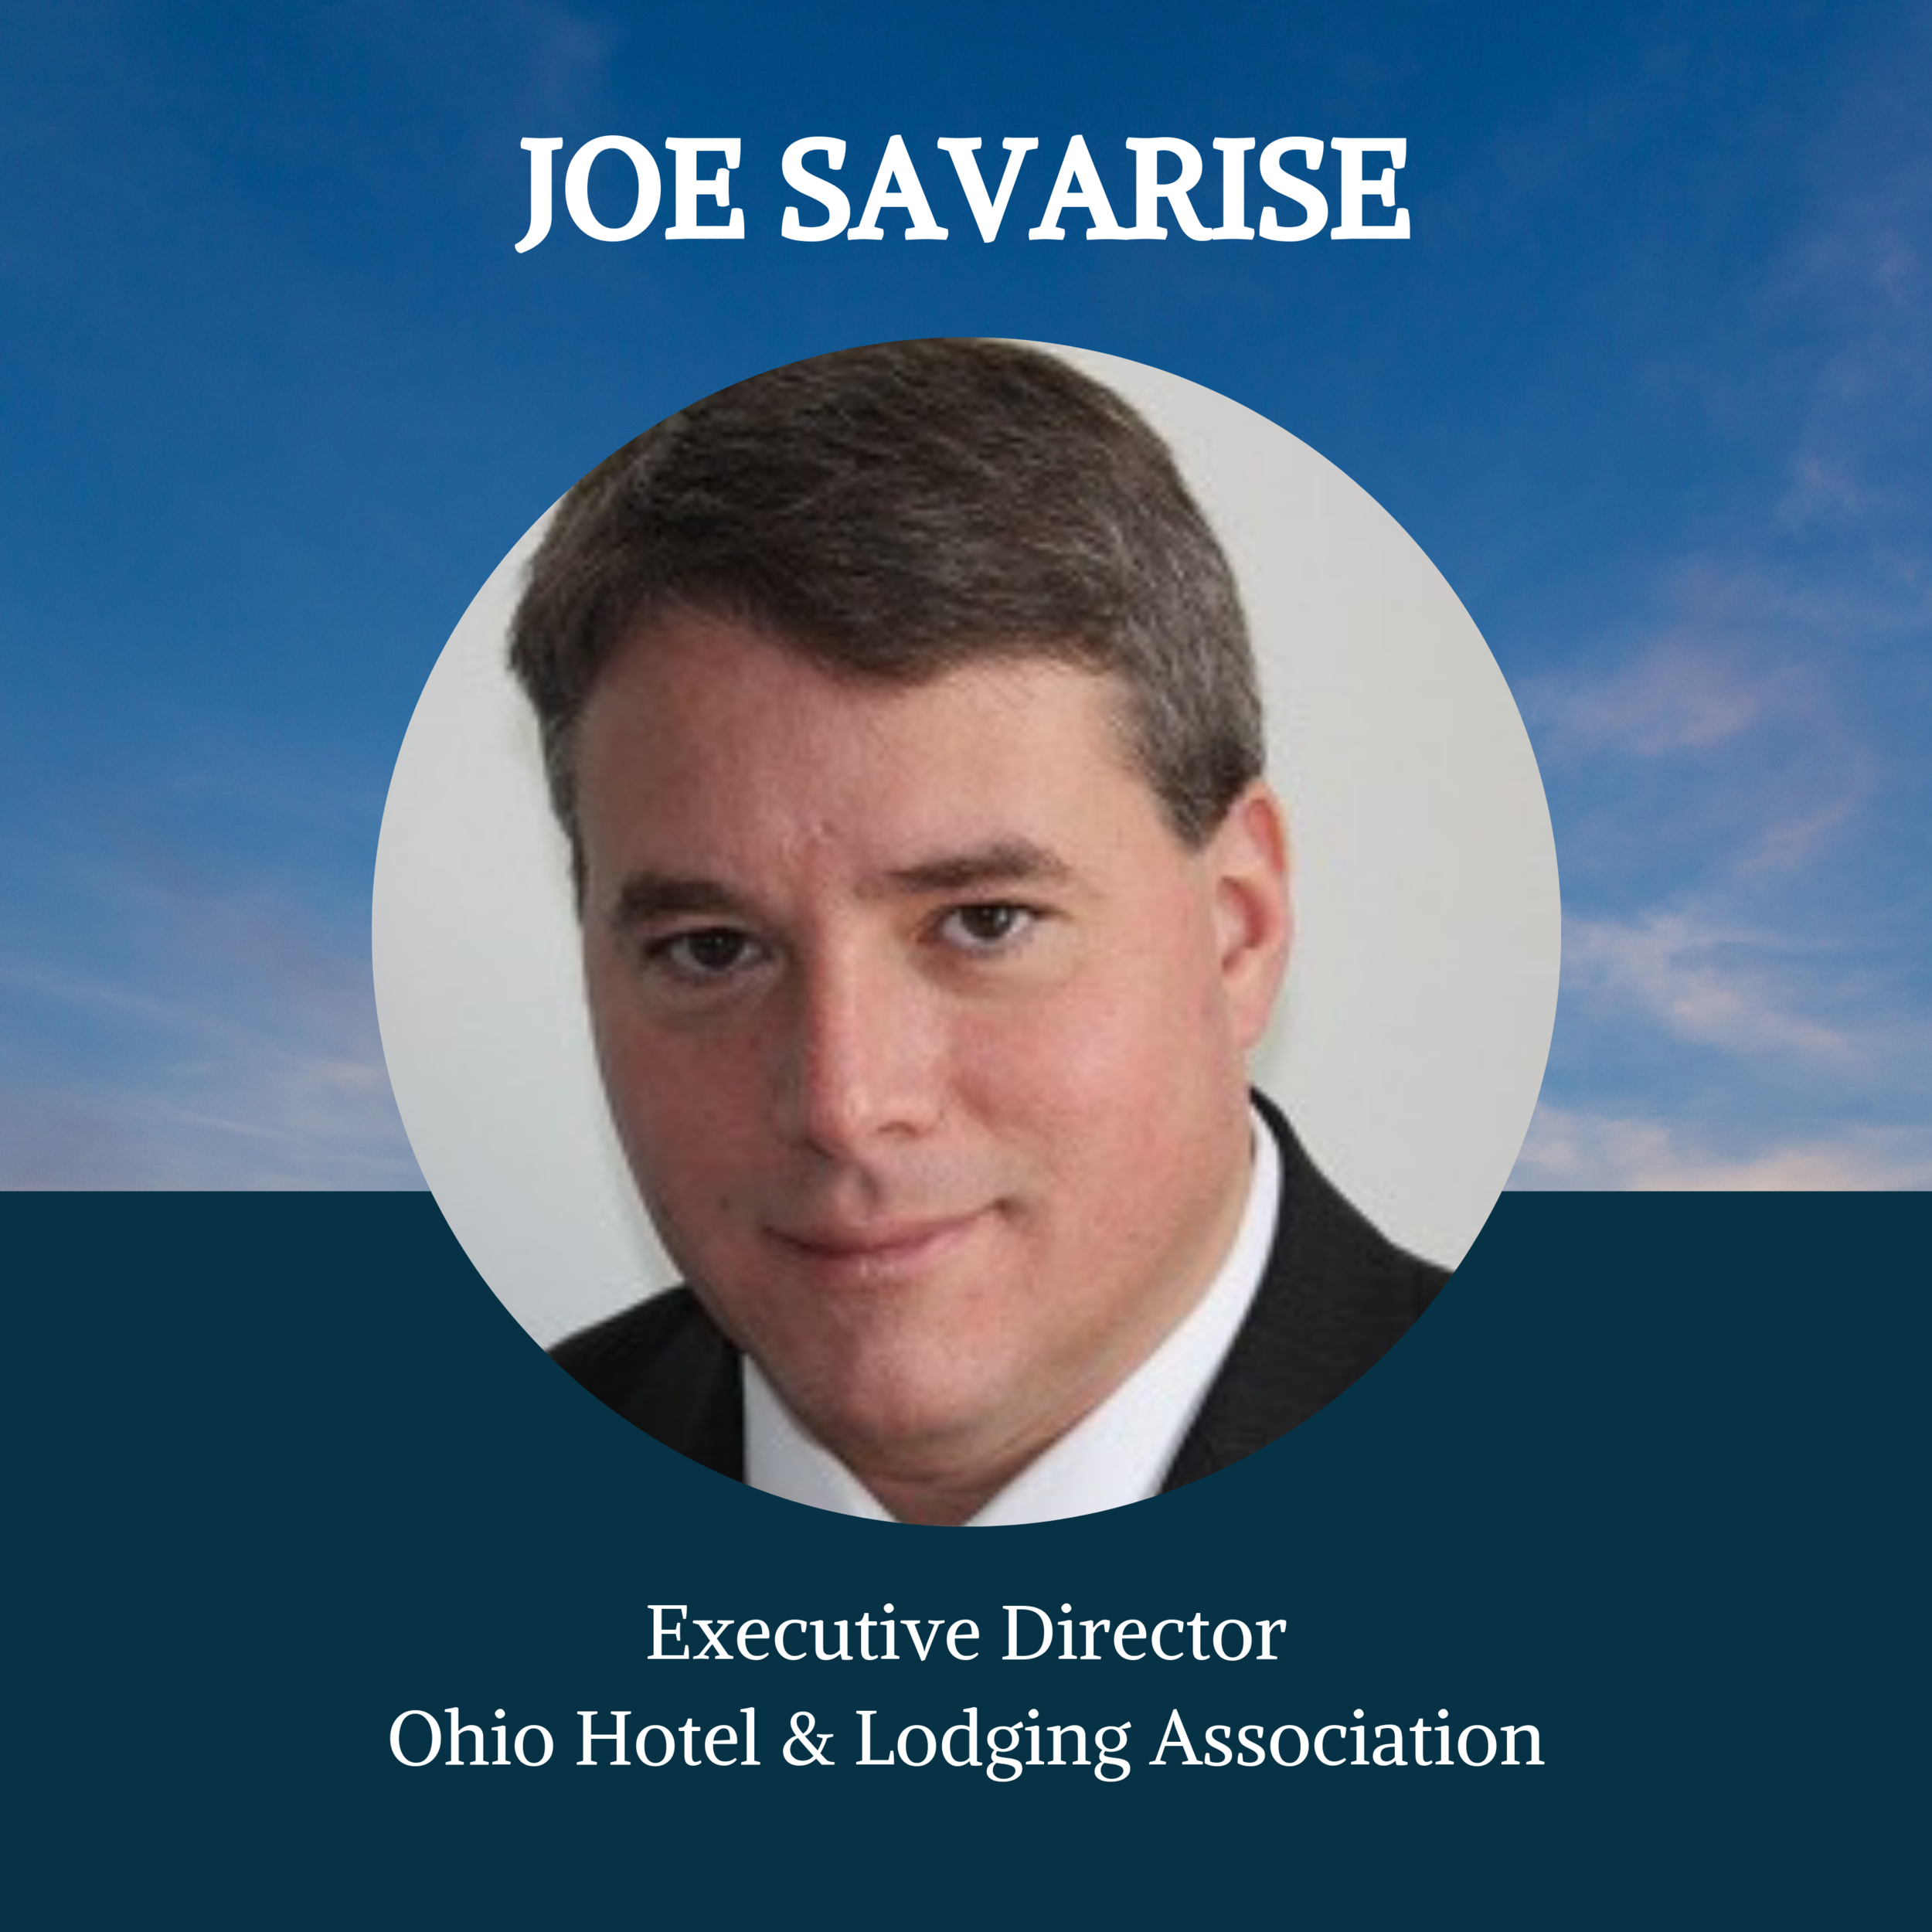 Joe Savarise joined the Ohio Hotel & Lodging Association as Executive Director in January, 2015. OHLA is a business association that provides strategic direction for Ohio's hotel and lodging industry, is the primary lobbying and advocacy entity for that industry within the state, and supports the growth of Ohio's travel economy. OHLA is committed to providing resources and connections, improving service and professionalism in hospitality, increasing sustainability, championing safety and security, and furthering charitable and community involvement. Part of that effort involves increasing and coordinating the industry's response to human trafficking. Joe is currently a member of the Boards of Directors for the Franklin County Convention Facilities Authority, Greater Columbus Convention & Visitors Bureau, Greater Columbus Sports Commission and the Columbus StreetRailway Corporation.